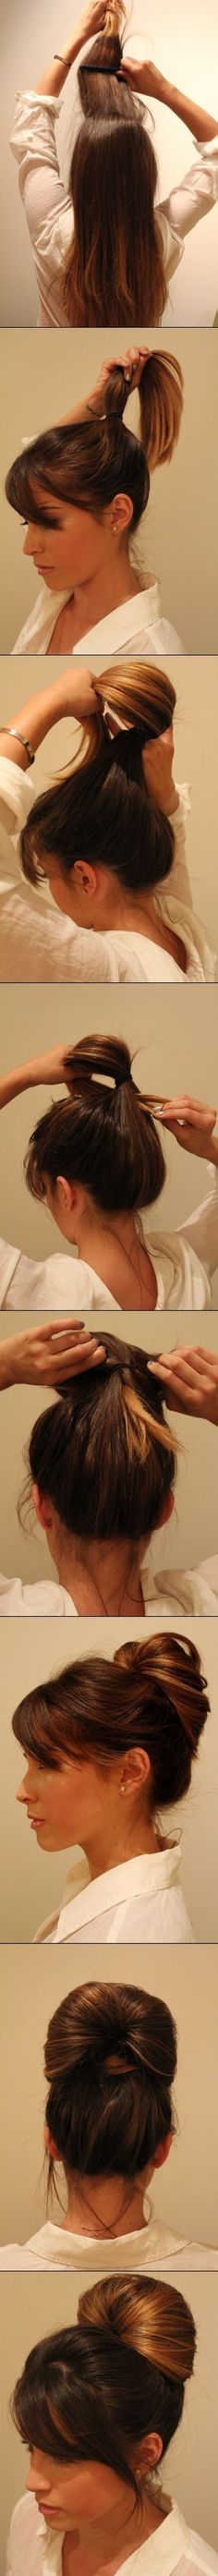 This sleek 'do only takes a minute and looks professional enough for work. | 26 Lazy Girl Hairstyling Hacks #sleek